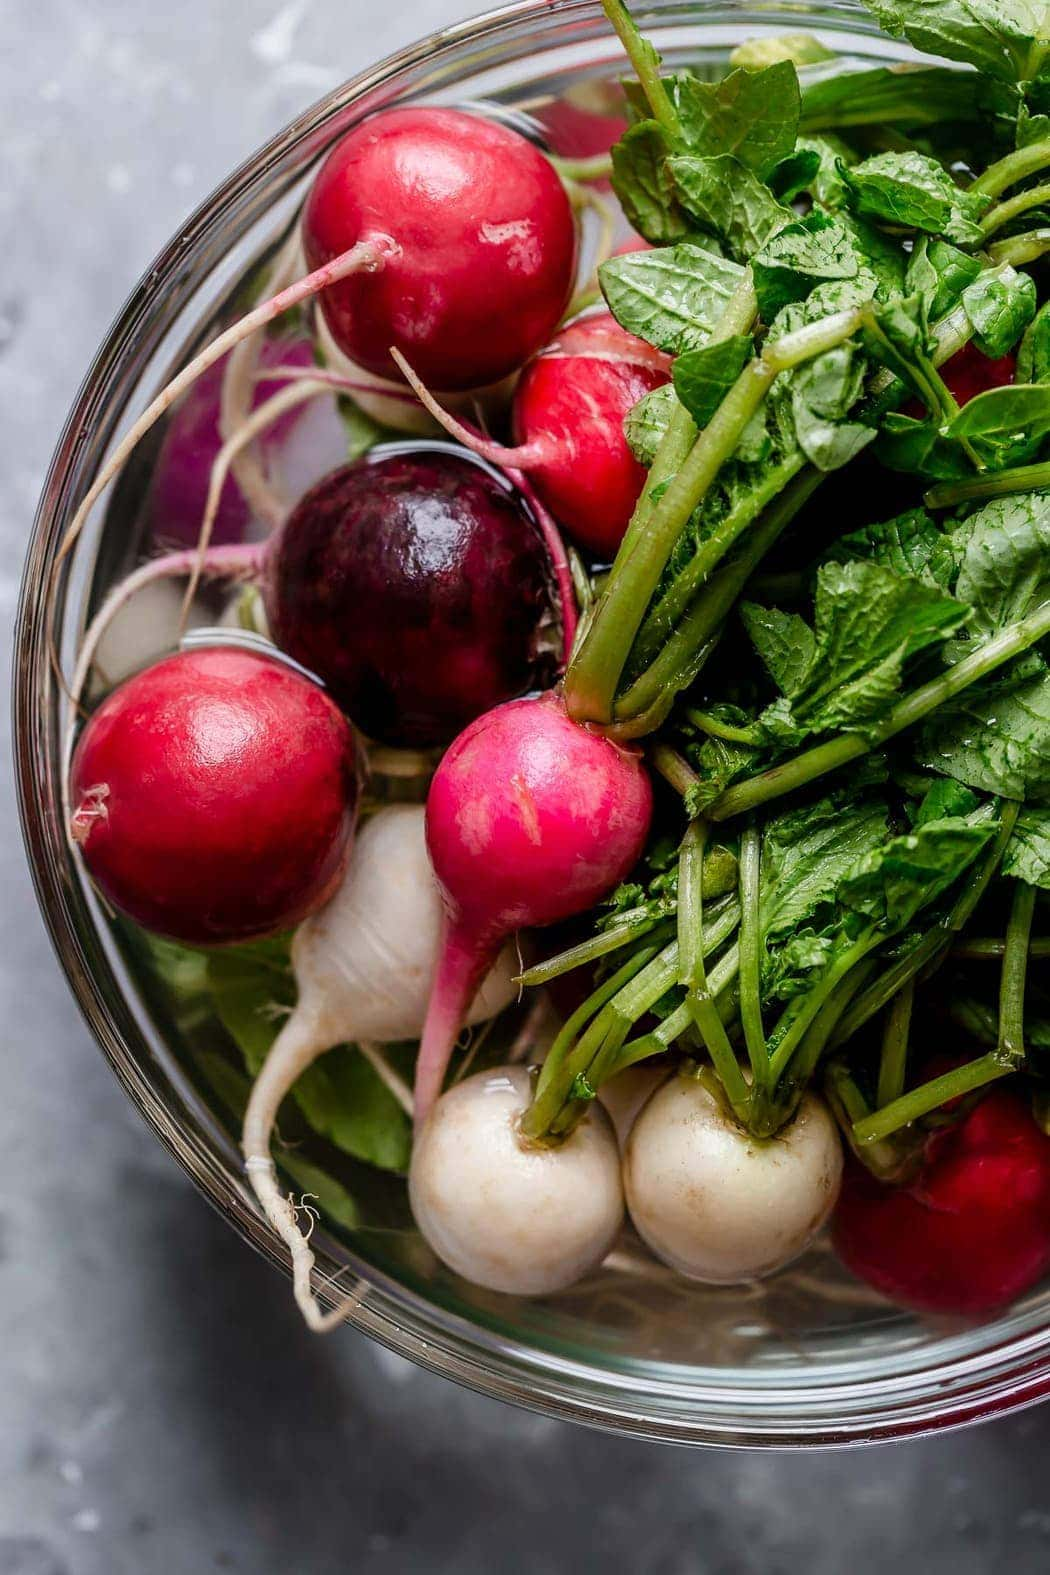 Fresh radishes with greens in a clear bowl filled with water. For the Garlic Roasted Radishes.